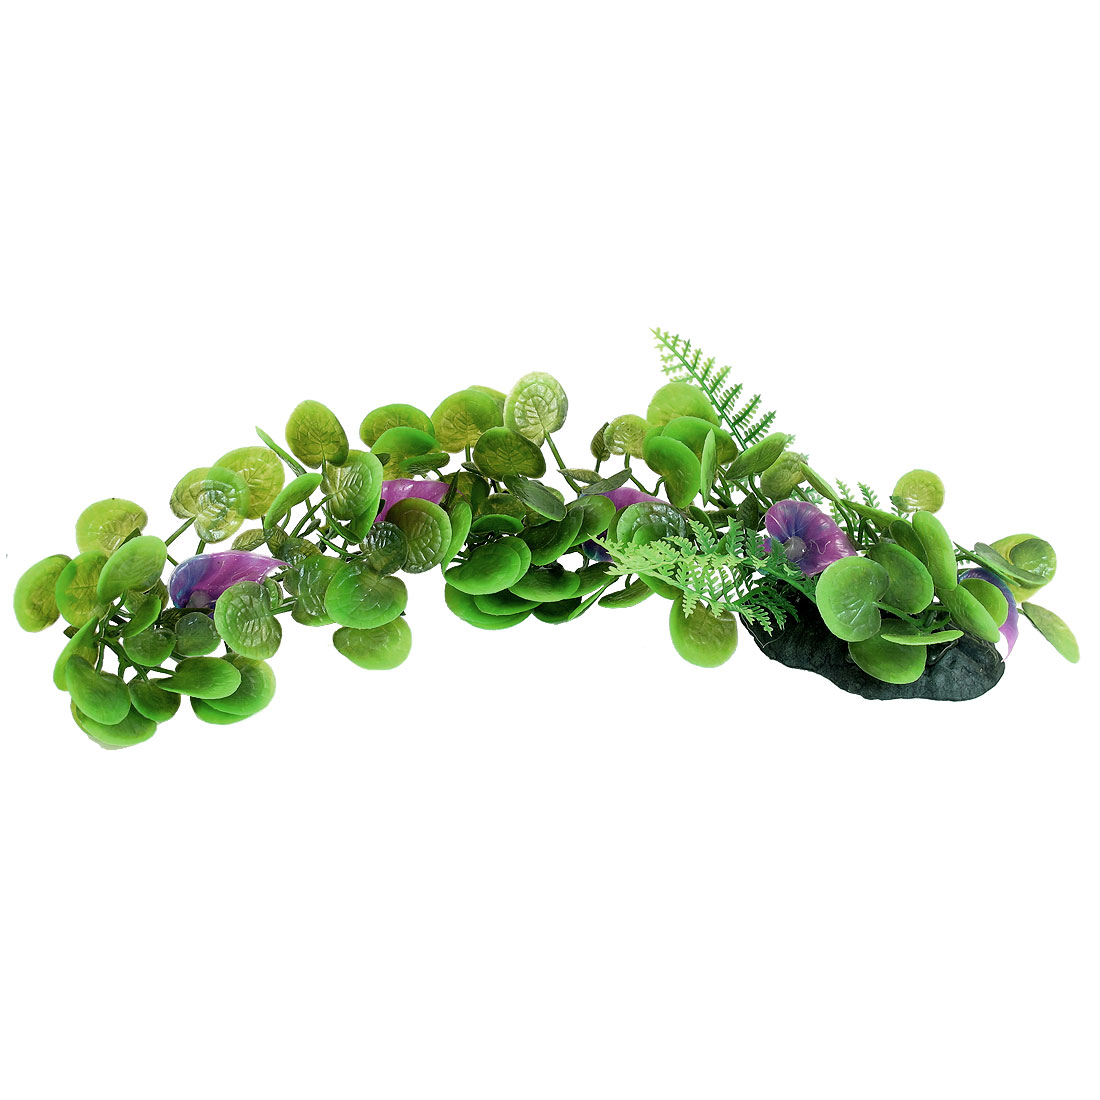 20cm High Decorative Underwater Manmade Plastic Grass for Aquarium